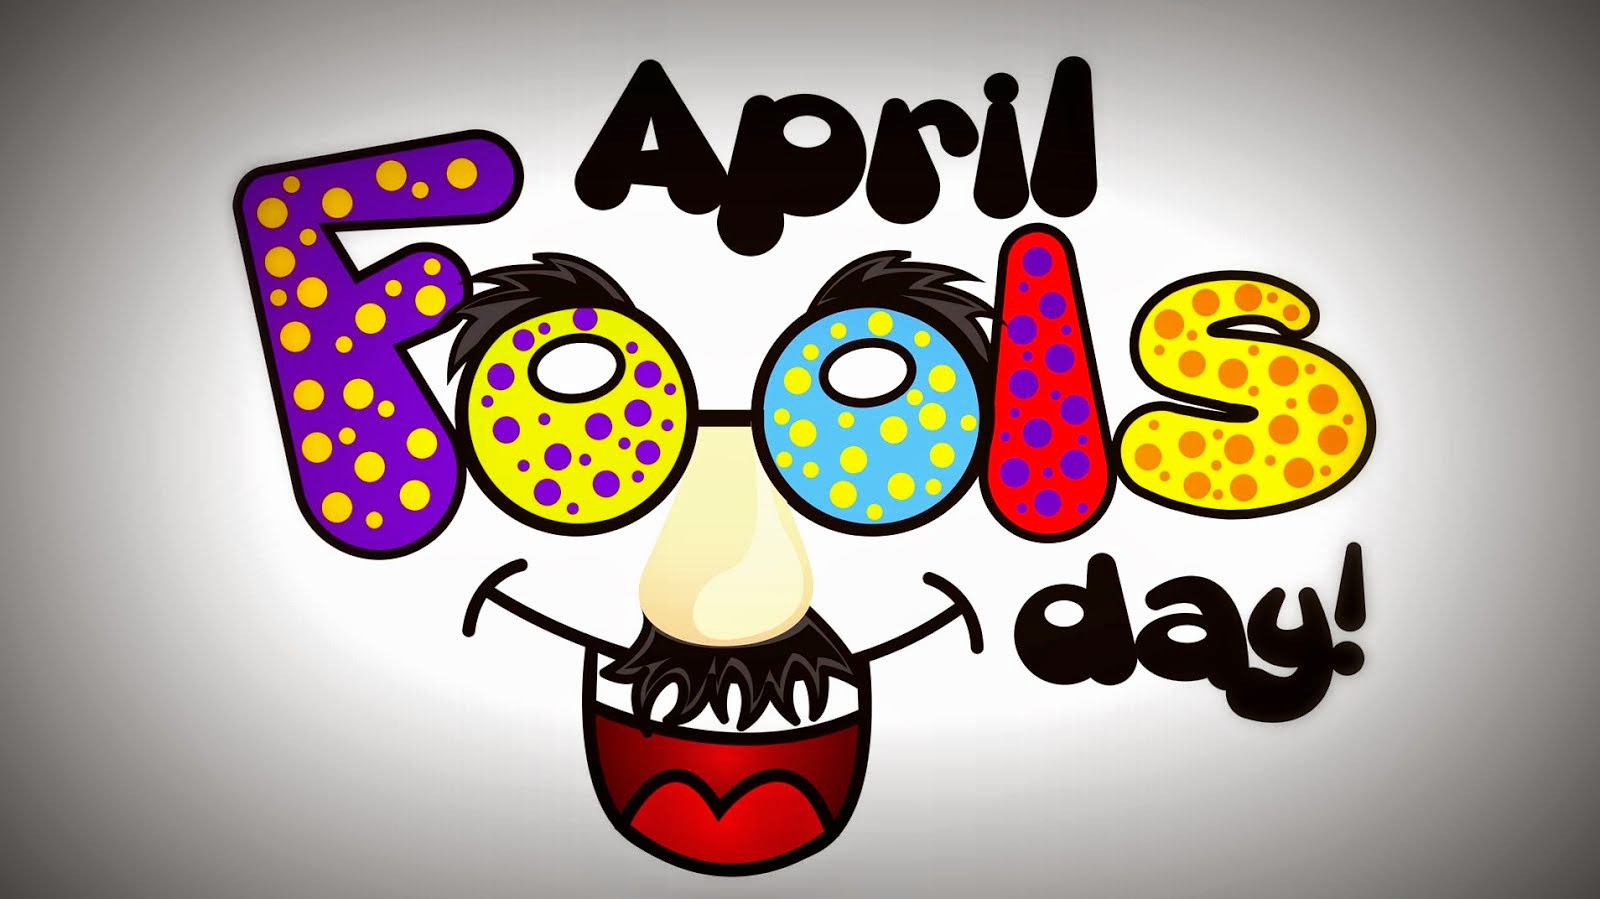 april fool s day Brace yourself: april fools' day, the worst holiday of the year, is upon us again, with its annual onslaught of awkward political gags, careless media blunders, eye-roll-inducing ad.